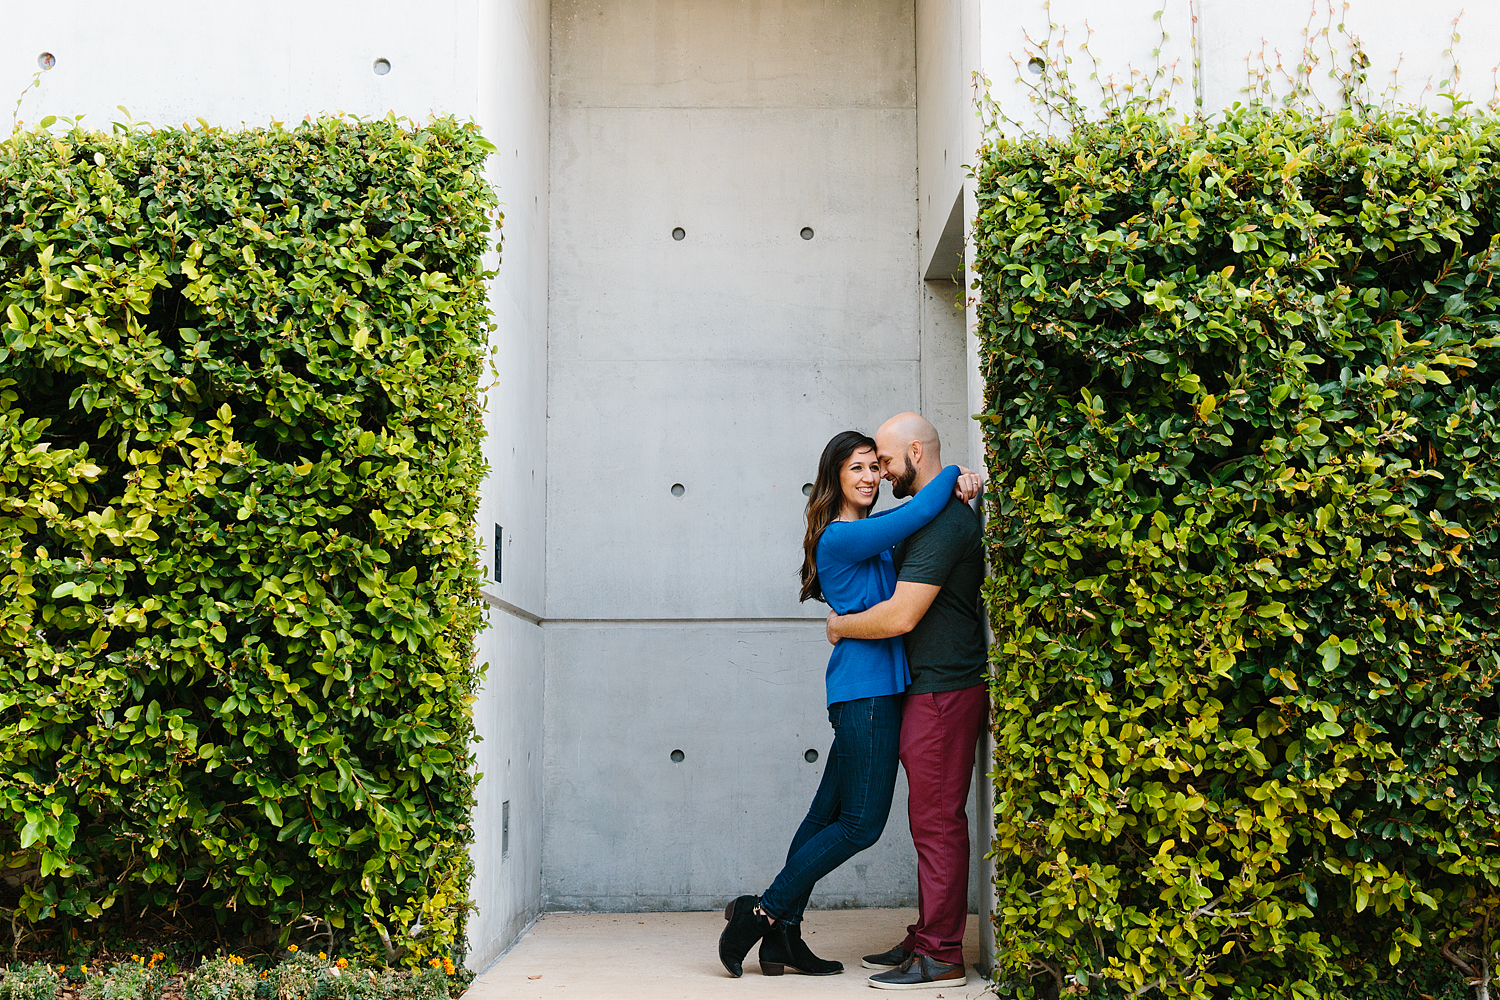 jeremy-russell-tampa-florida-engagement-wedding-17-07.jpg